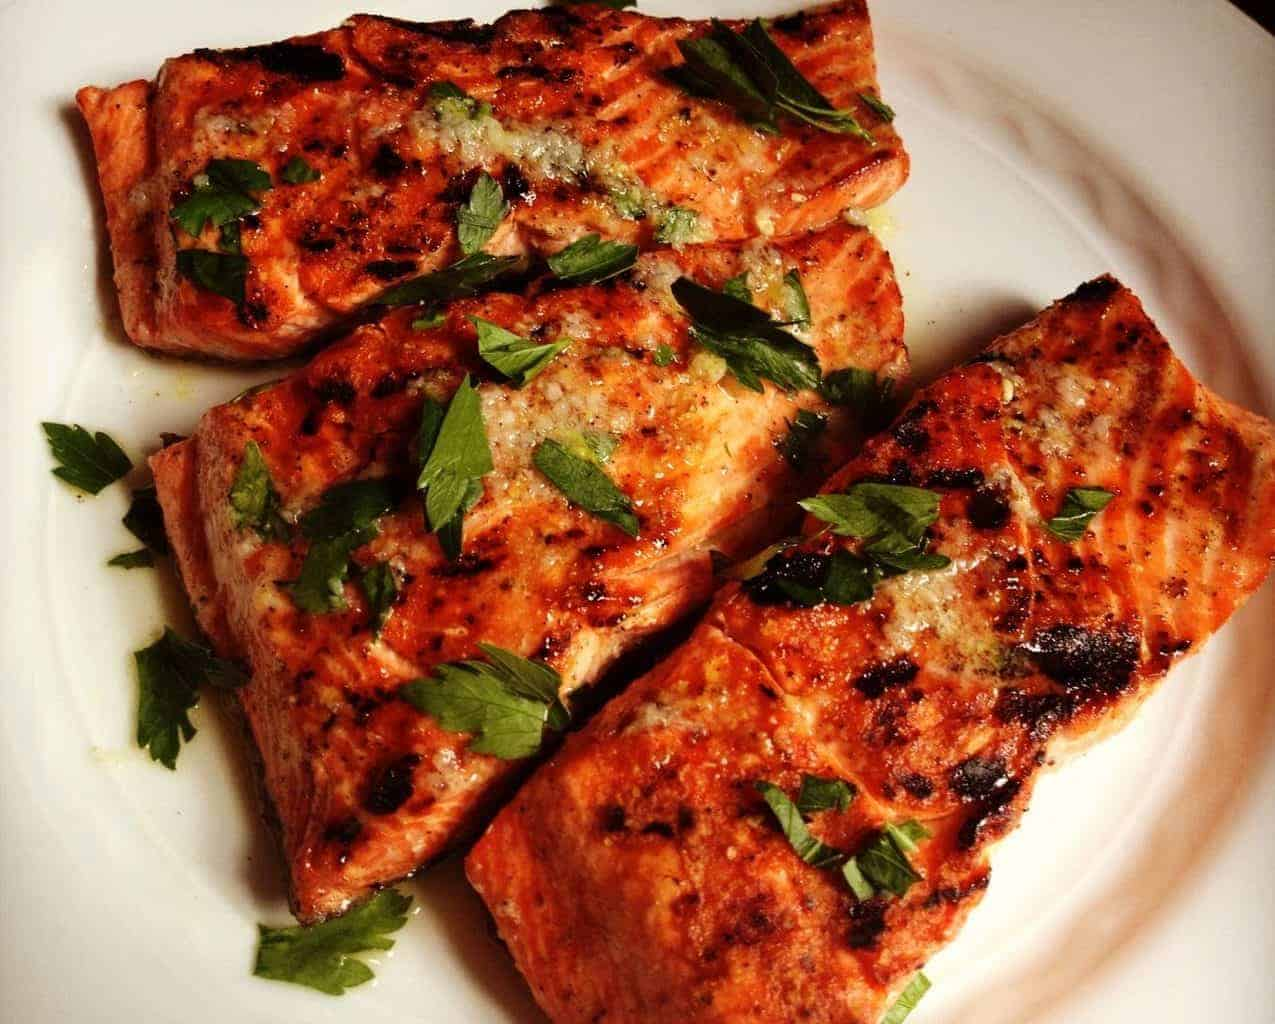 Salmon with Lemon Garlic Sauce